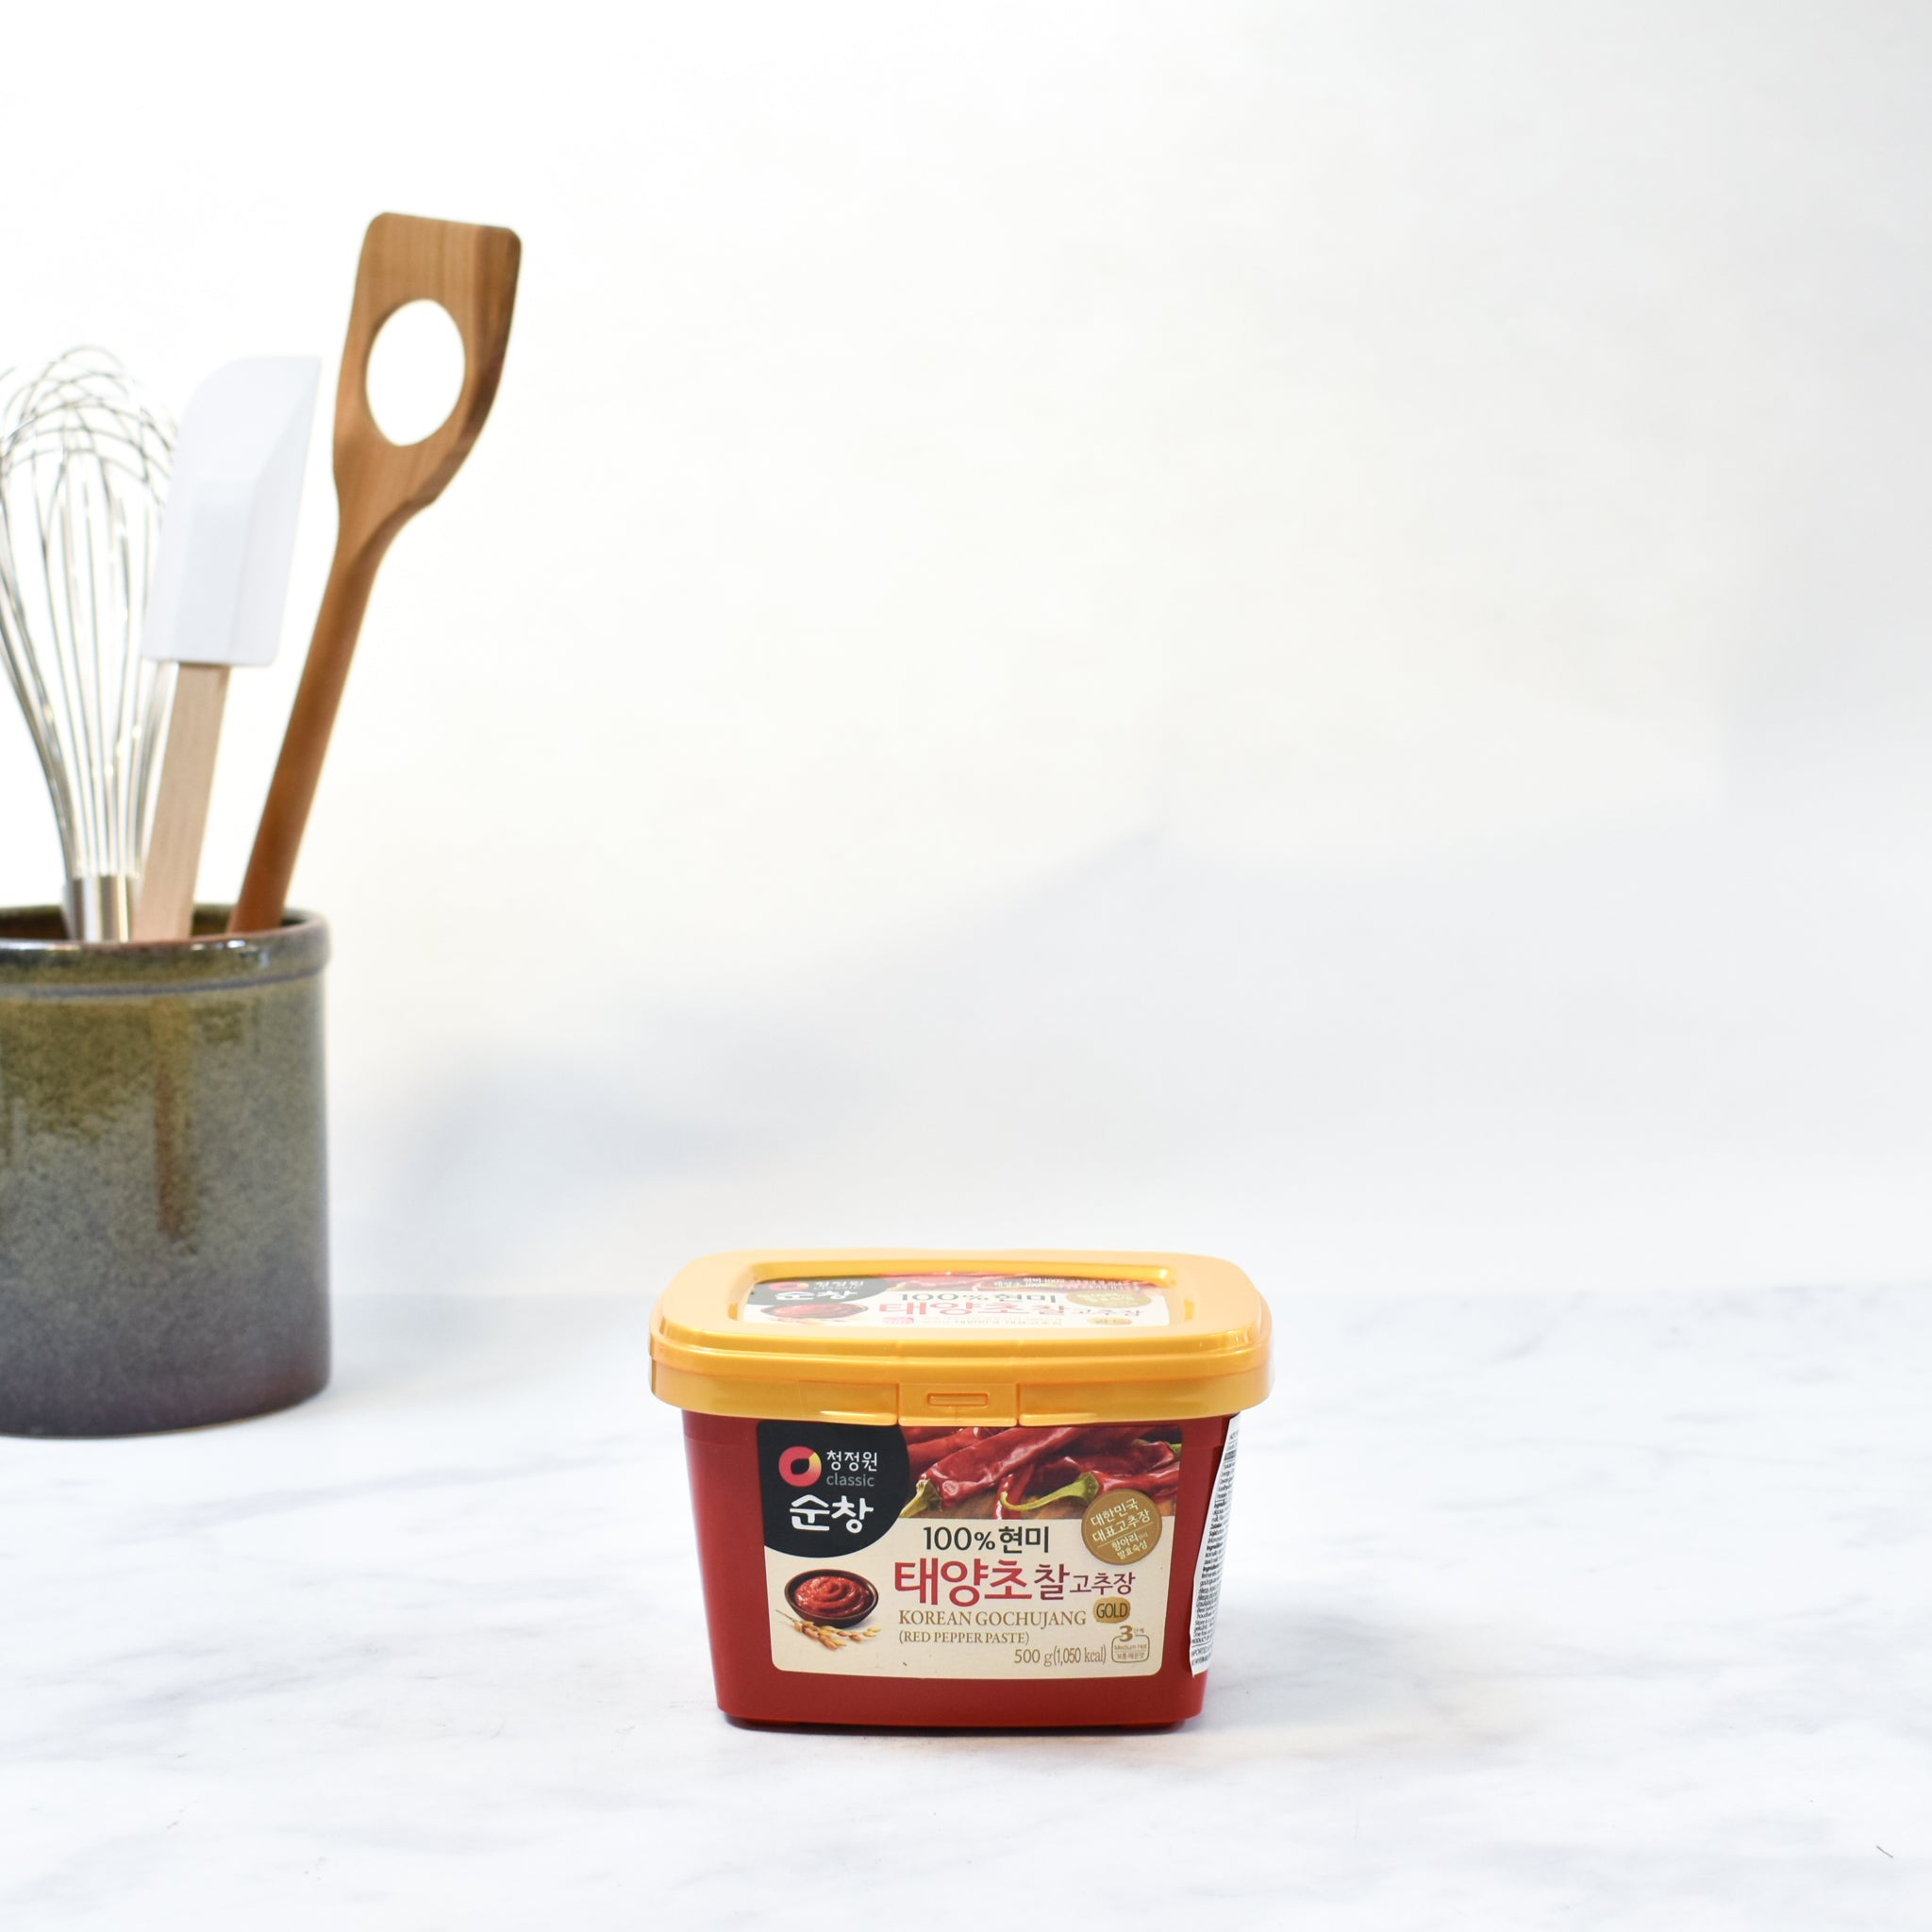 Gochujang Hot Pepper Paste 500g Sauces & Condiments Korean Food & Recipes Lifestyle Pack Shot